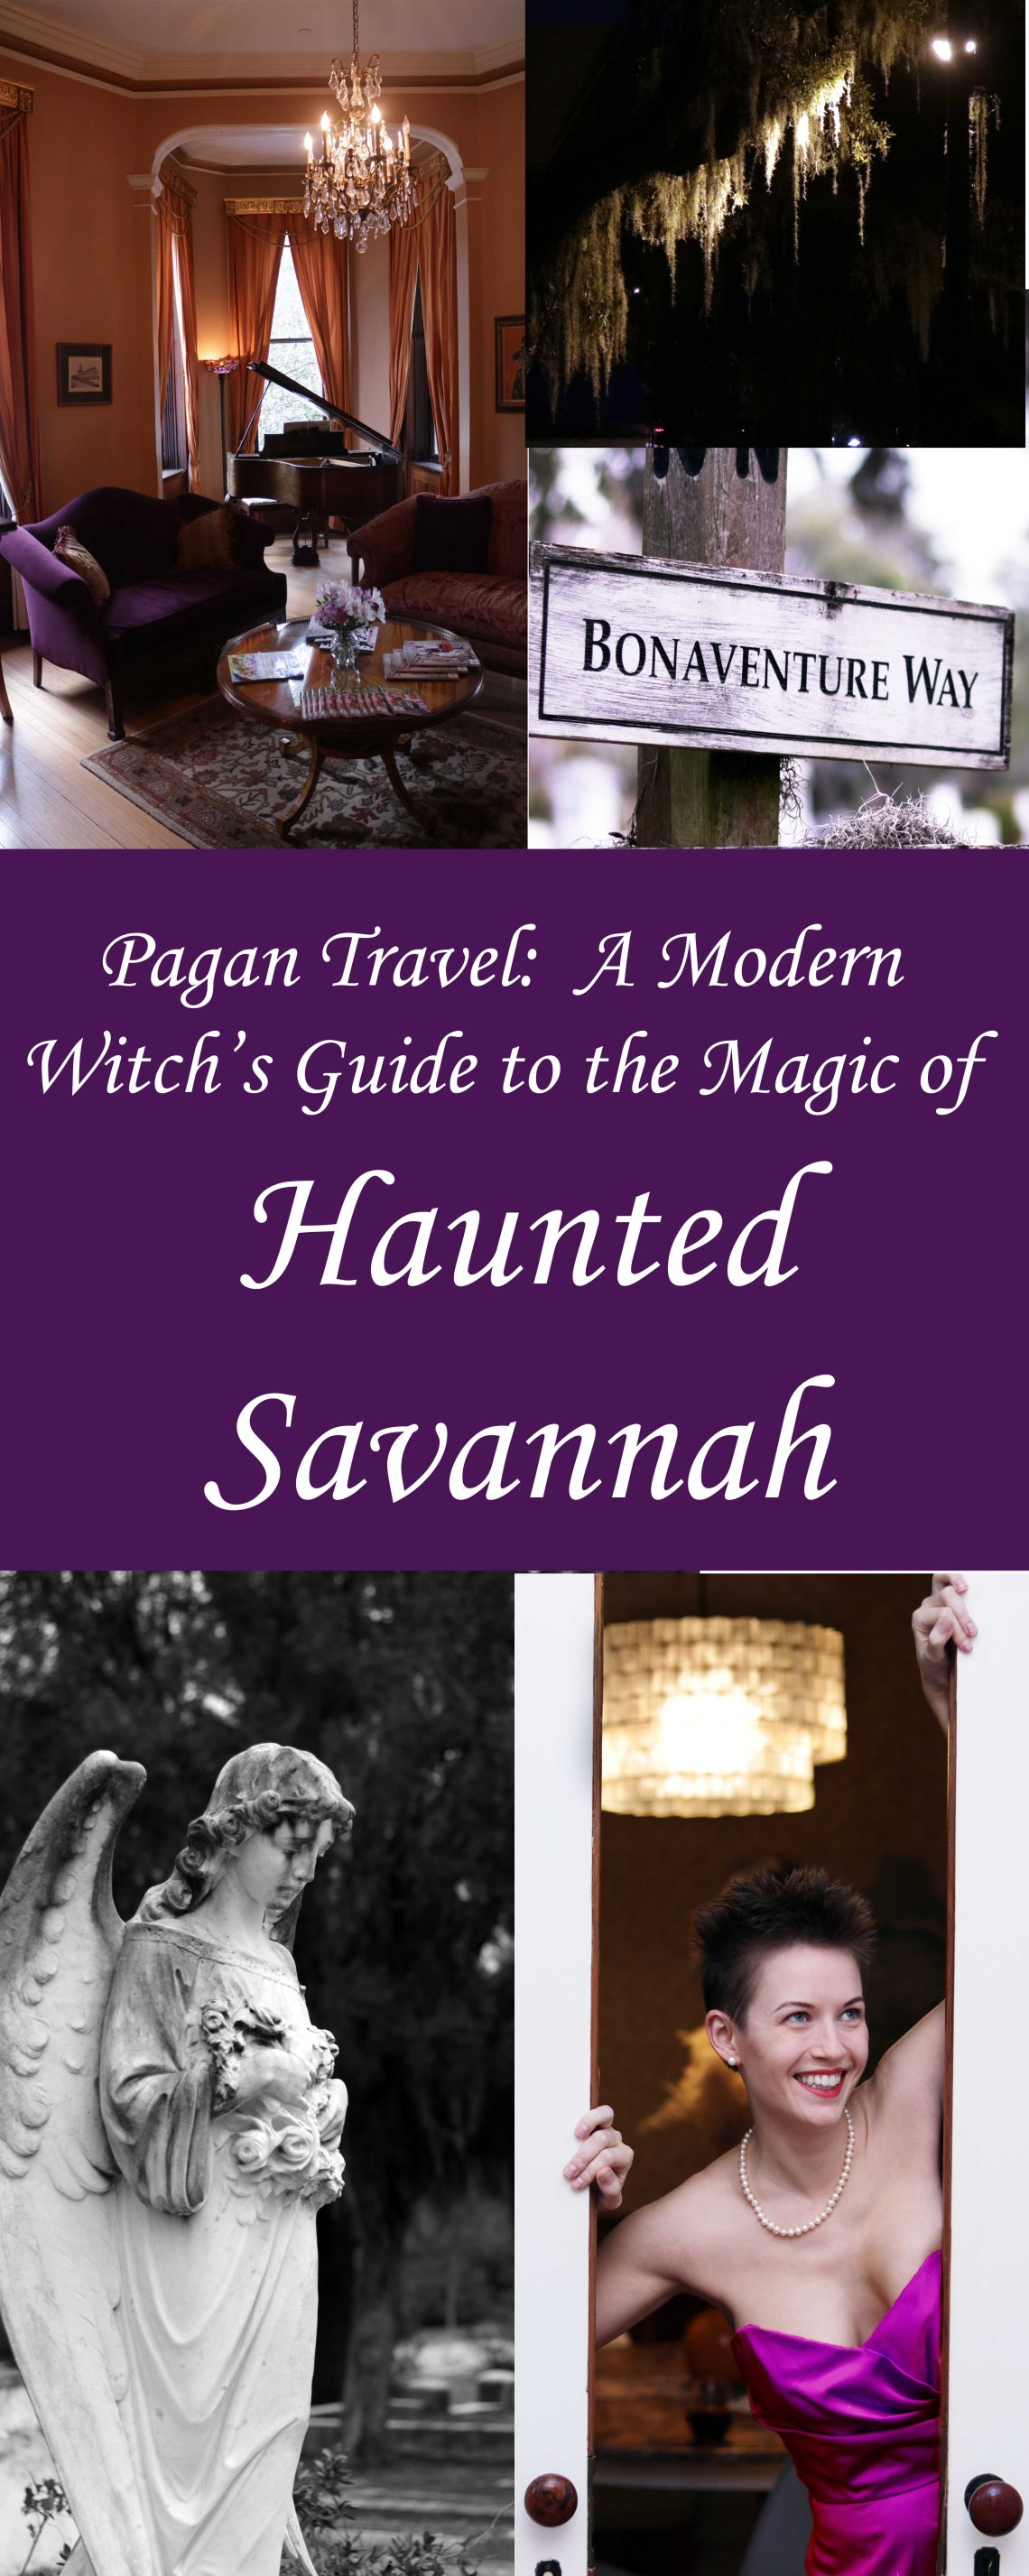 The Modern Witch's Guide to the Magic of Haunted Savannah